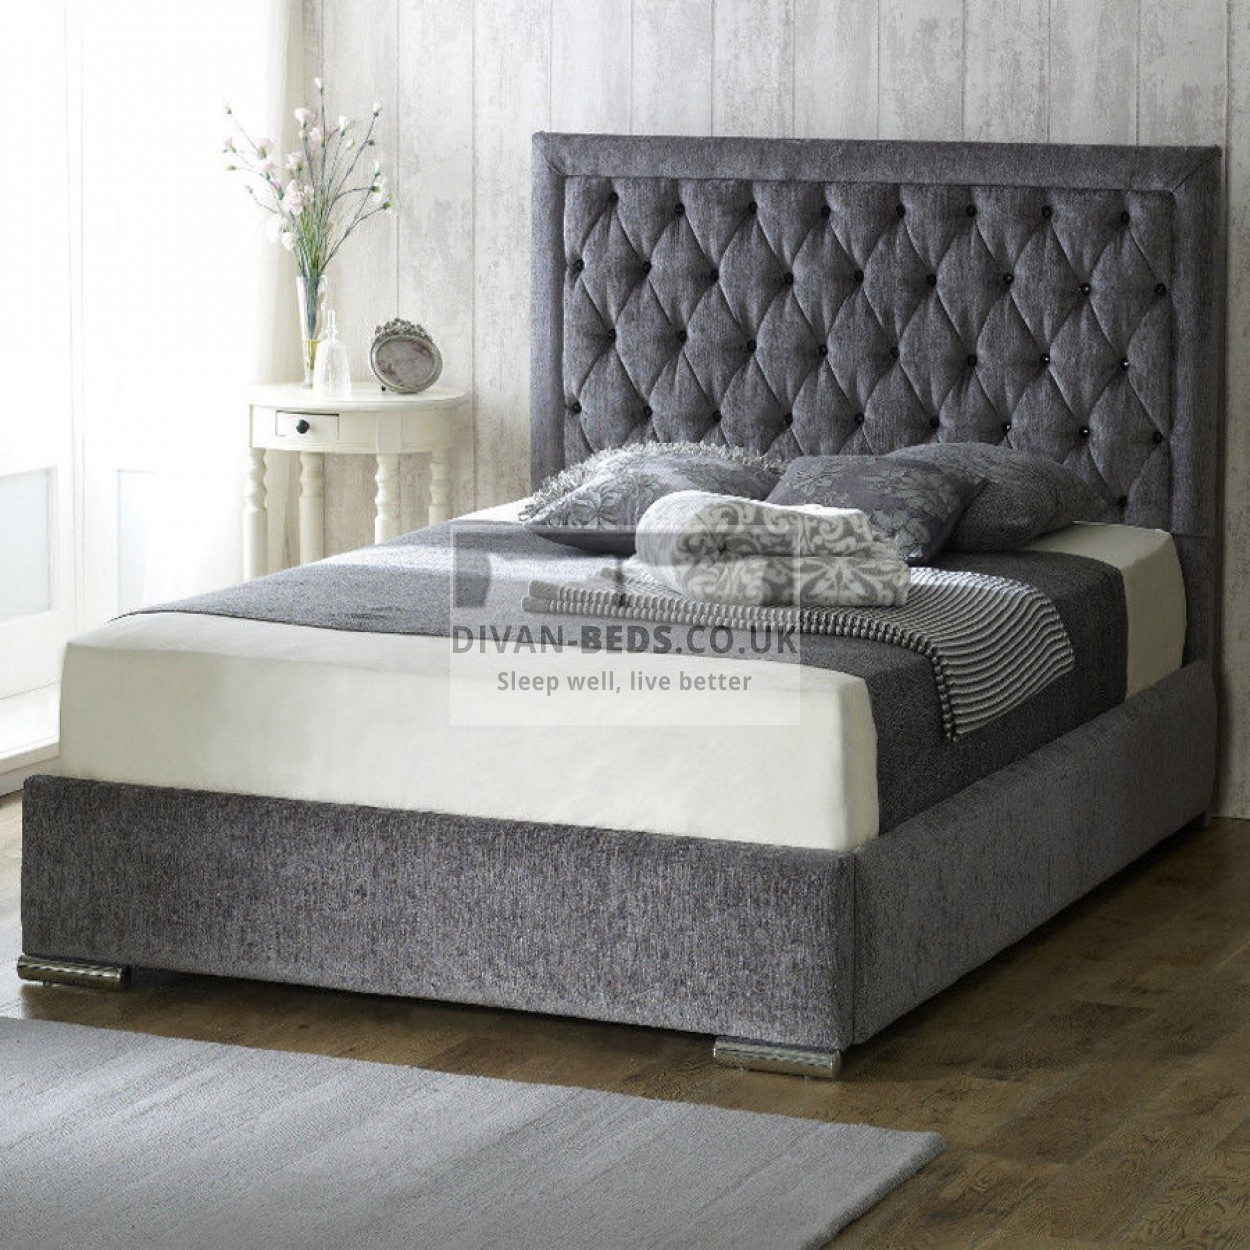 Belinha fabric upholstered bed frame guaranteed cheapest for Divan upholstered bed